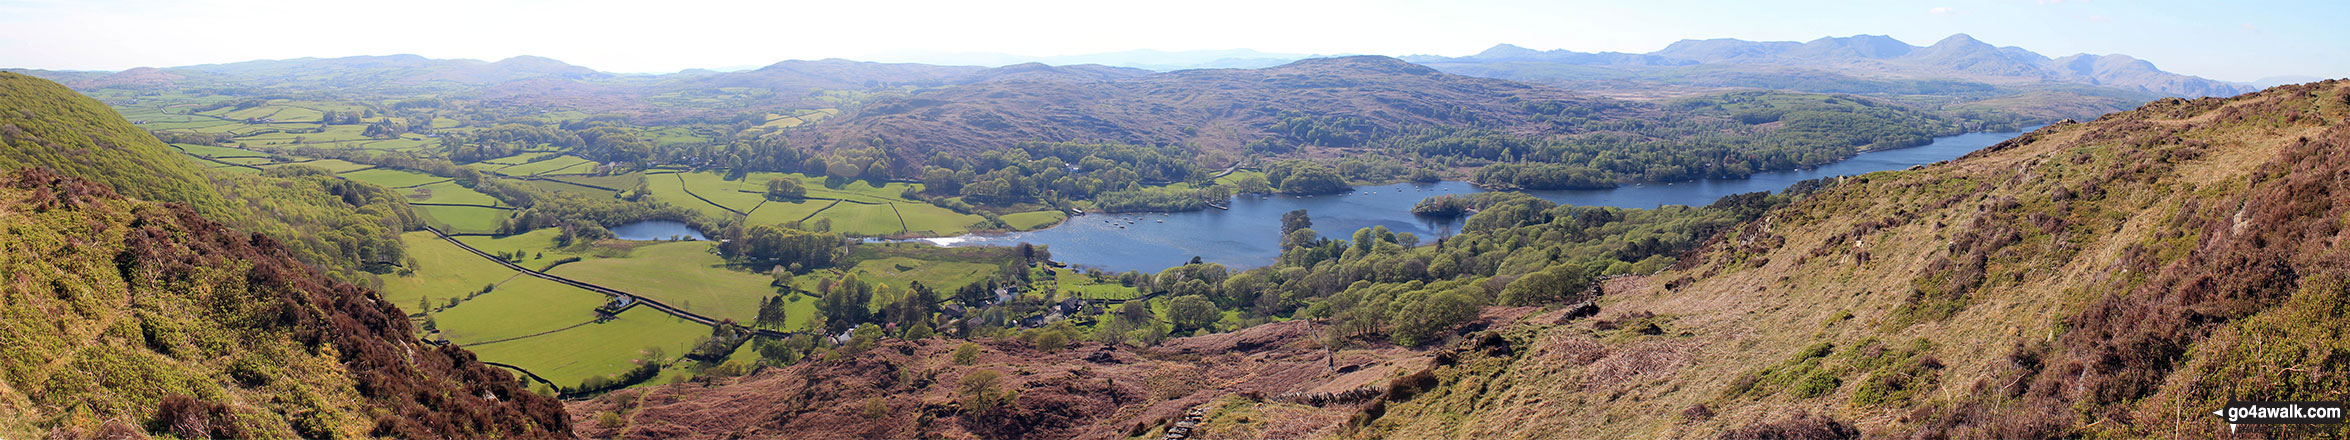 Coniston Water from the summit of Brock Barrow (Top o' Selside) with Beacon (Blawith Fells) prominent (centre) and the Coniston Fells: White Maiden, Walna Scar, Dow Crag, The Old Man of Coniston, Brim Fell, Swirl How and Wetherlam in the background (right)